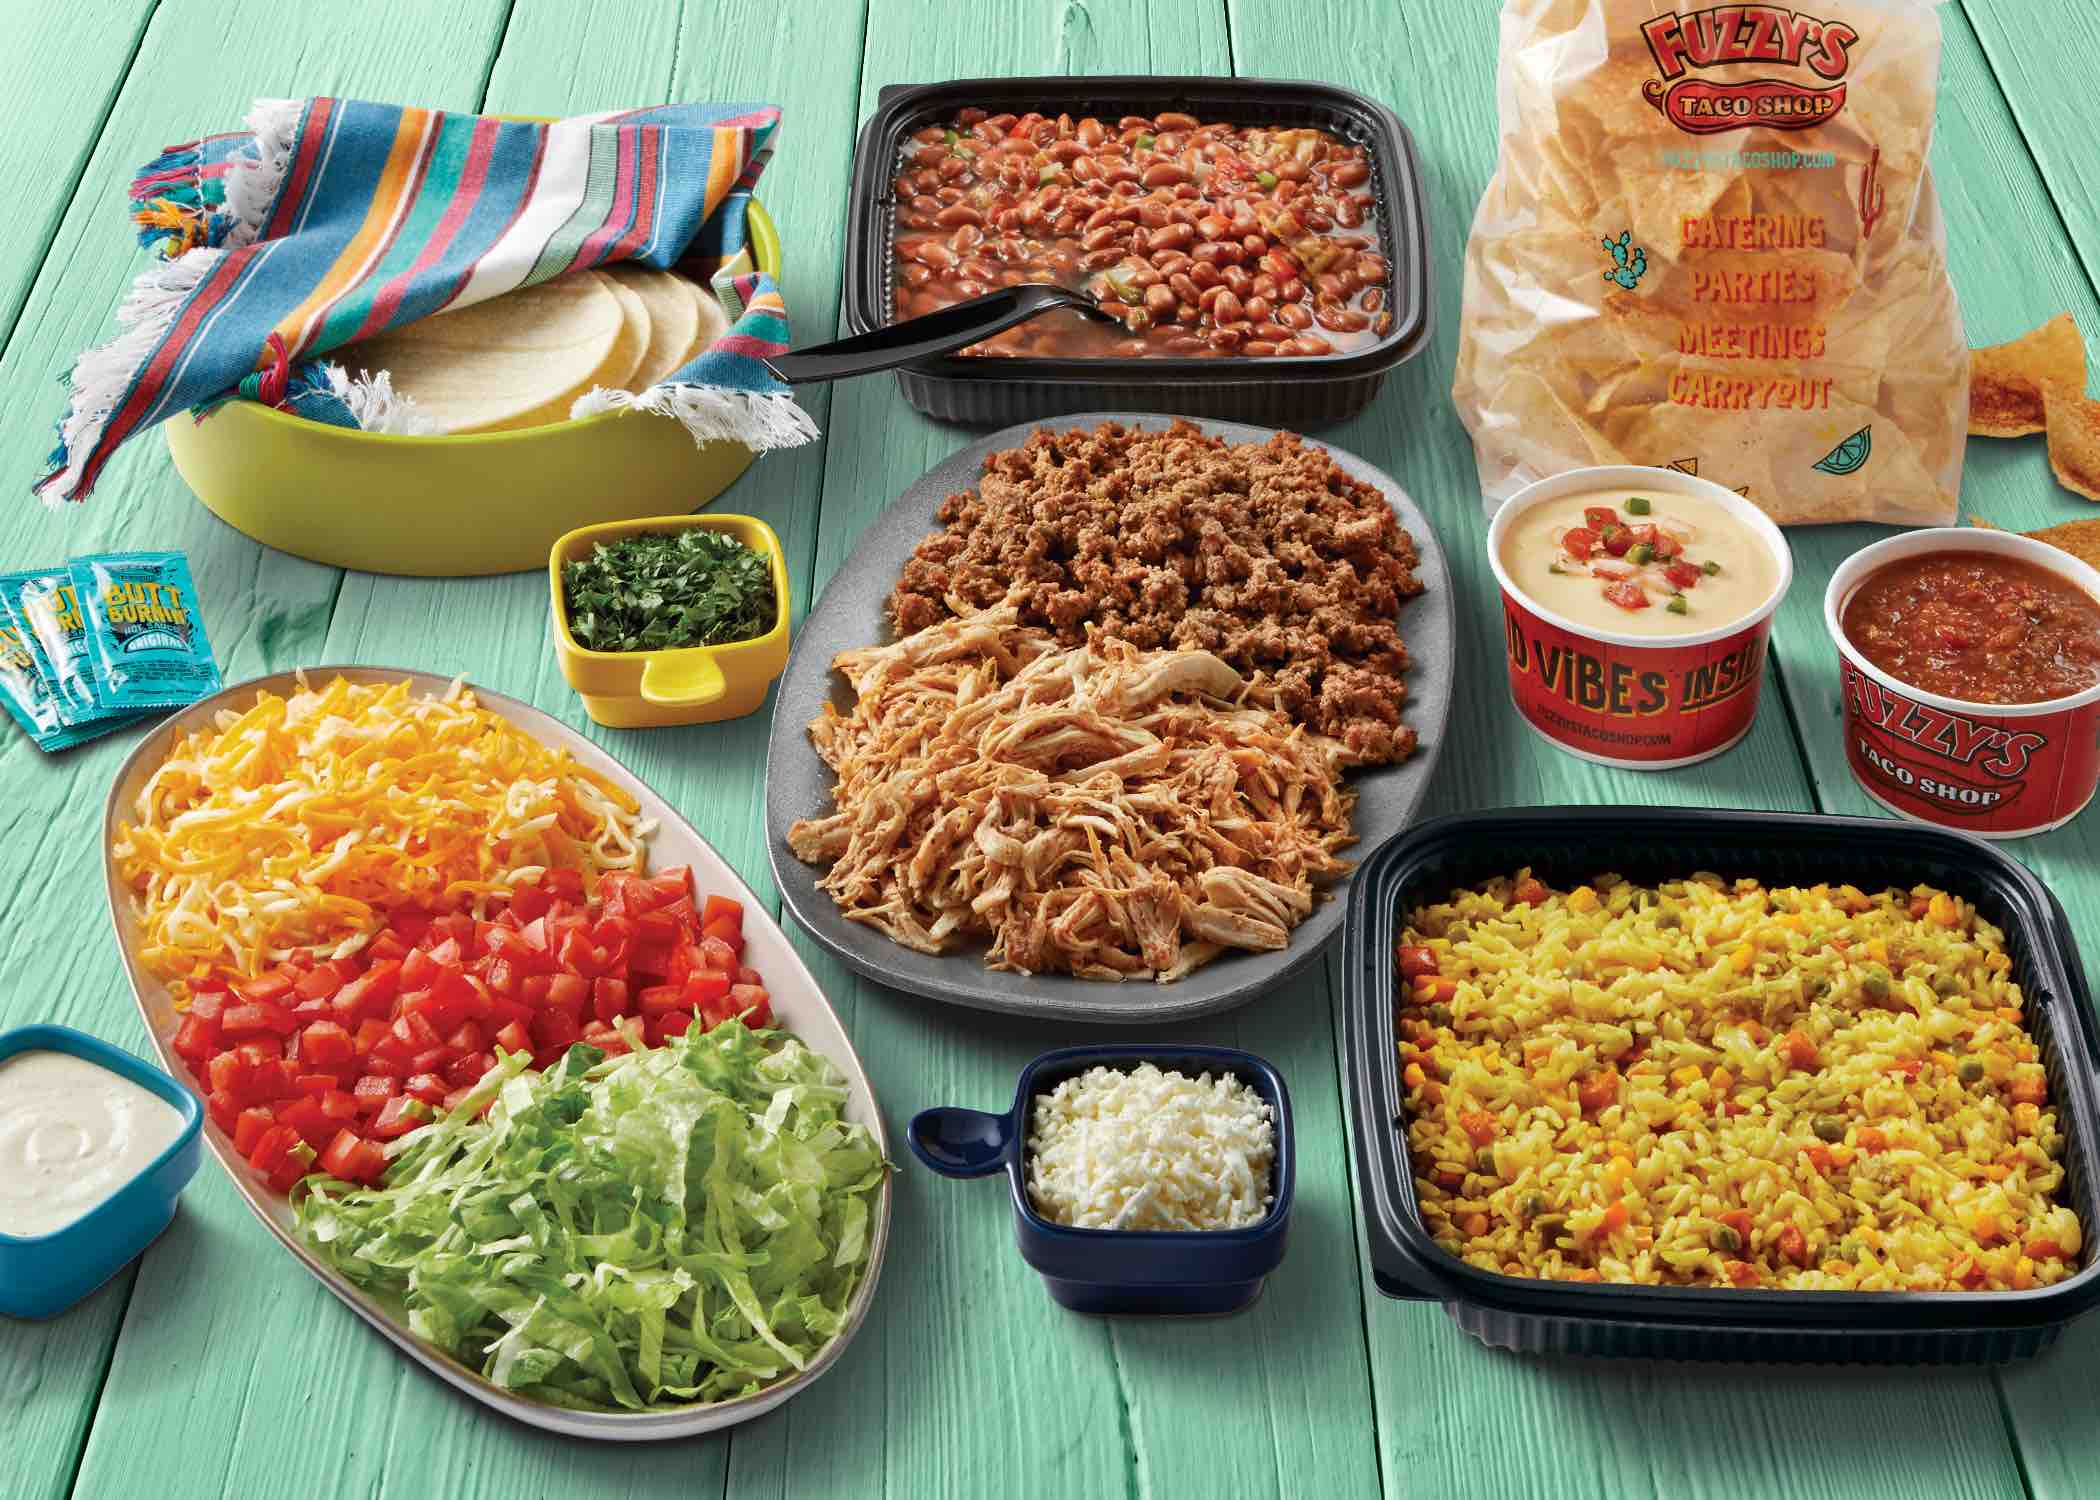 Fuzzy's Taco Shop releases Baja-inspired family meals for the holidays